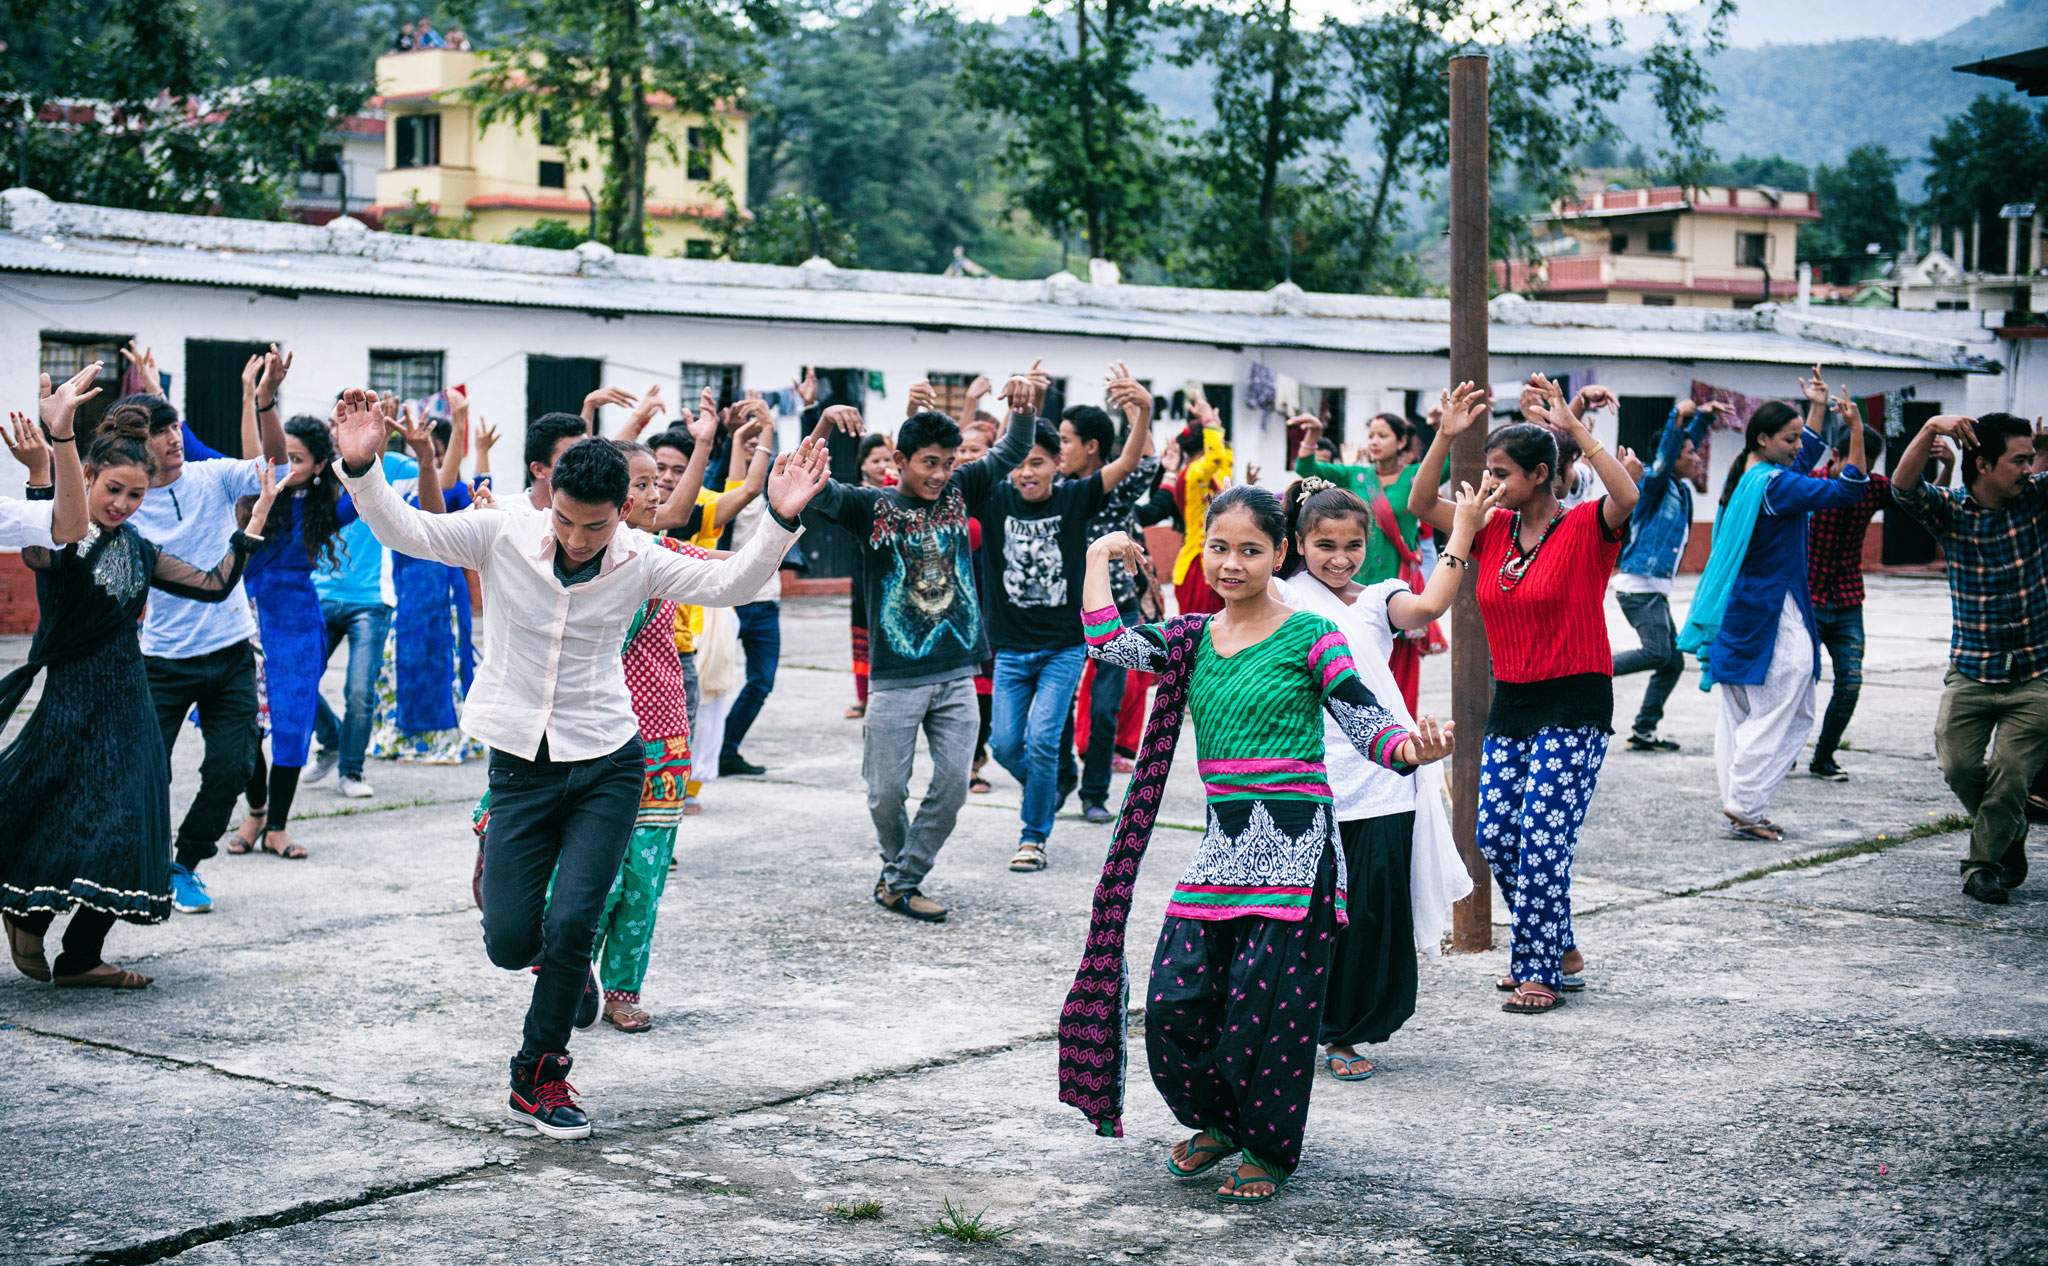 Weavers were cast as dancers to celebrate life 'shining brightly at home' in 'Nine Million Stars'. A joint project between Jan Kath and Label STEP, the video celebrates Nepali carpet weaving as a sustainable alternative to migrant labour. | Image courtesy of Jan Kath.